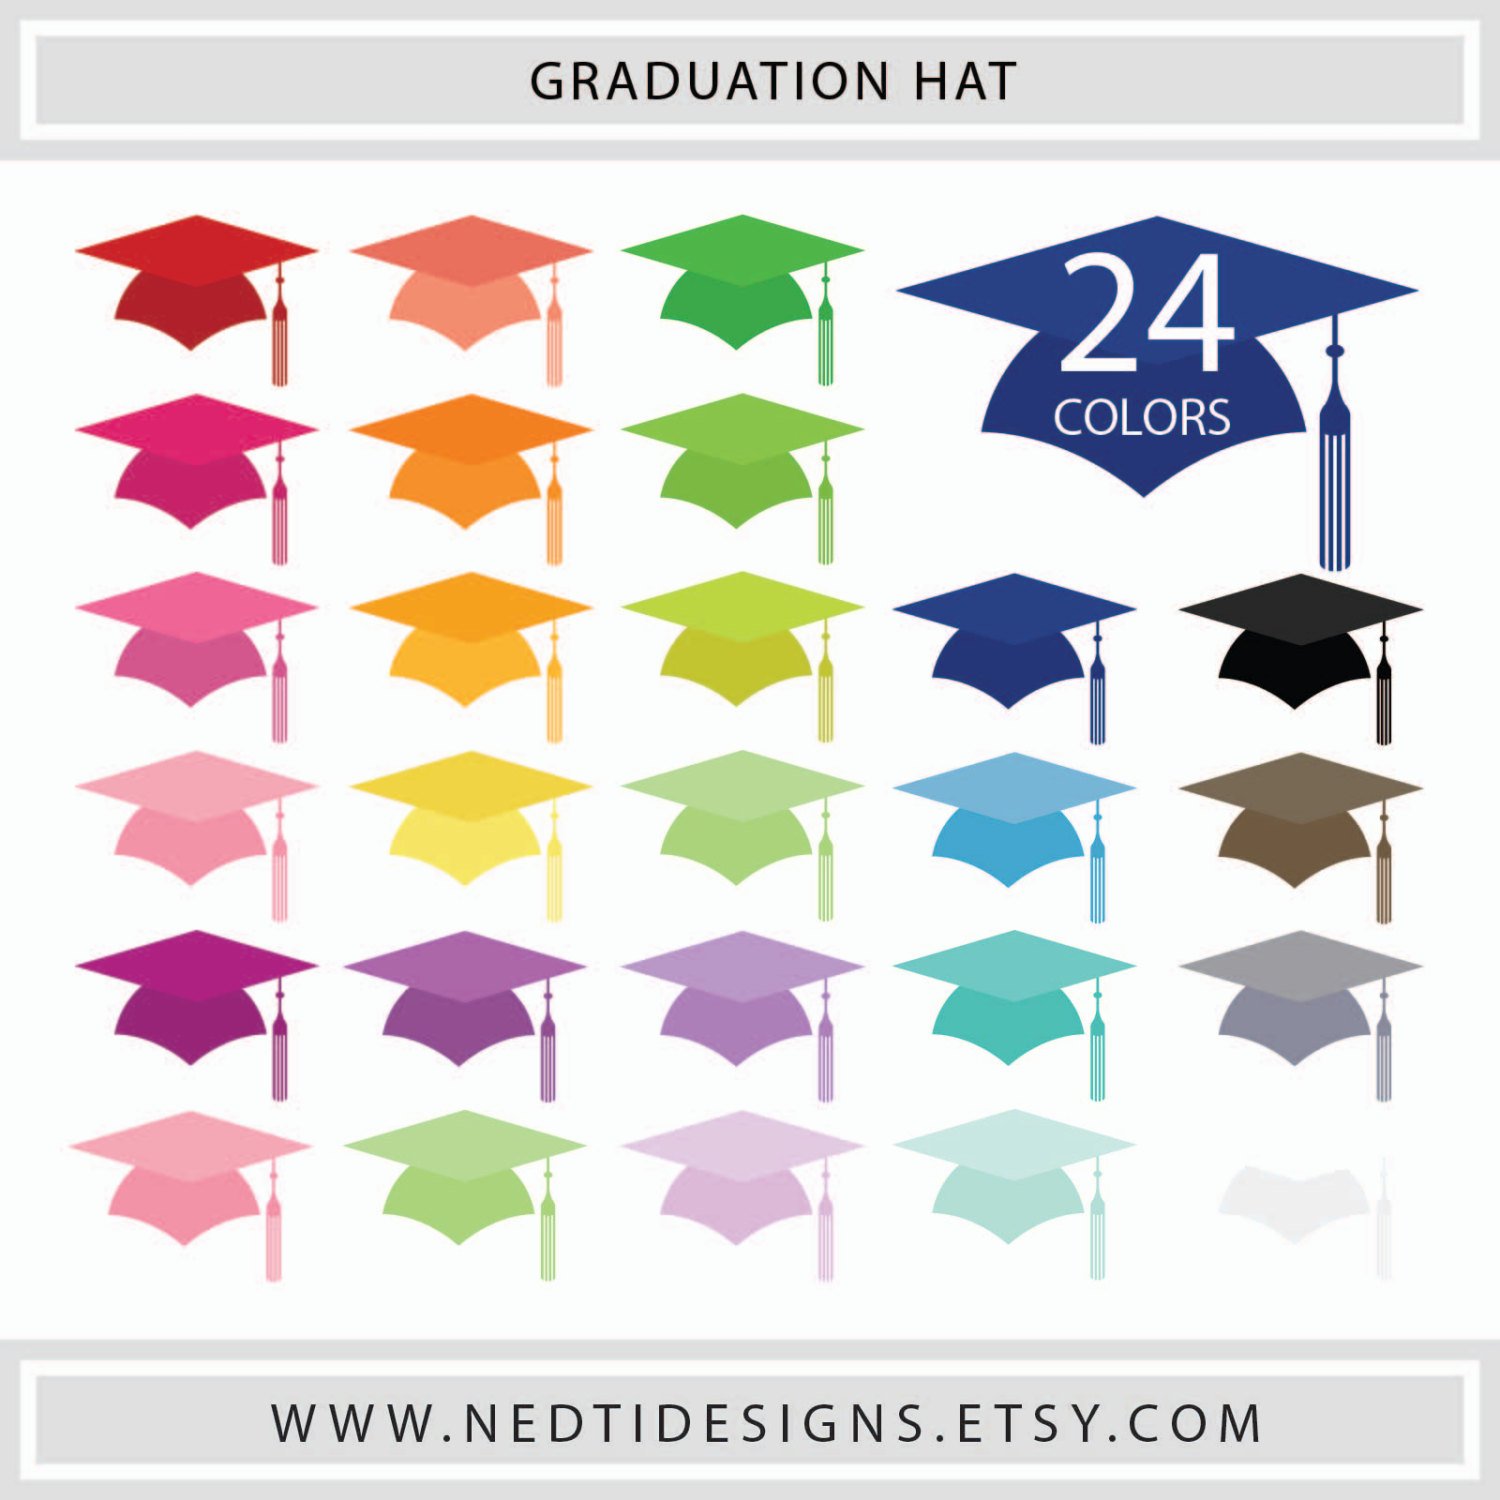 Square clipart colored Graduation Mortarboard/ this Cap Hat